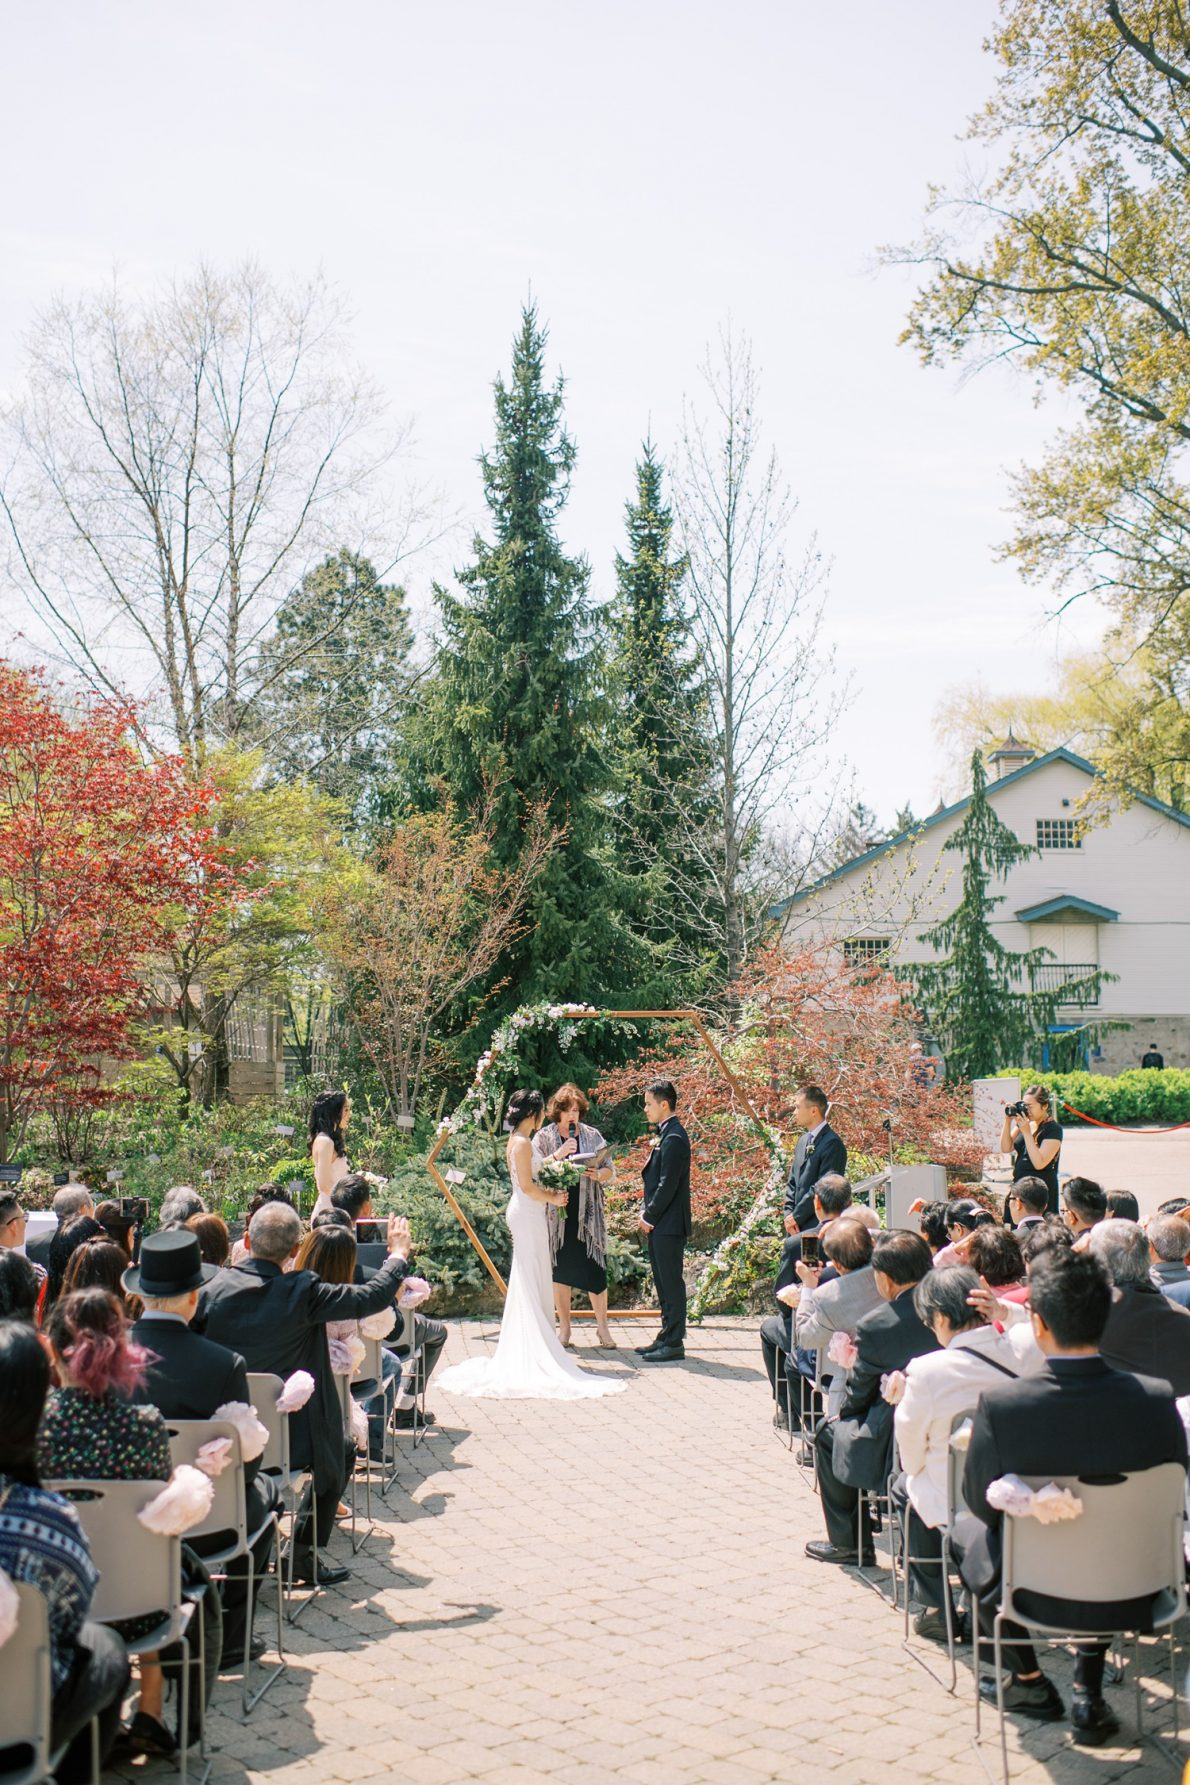 Outdoor wedding ceremony at Edwards Garden and Toronto Botanical Garden Wedding Photos